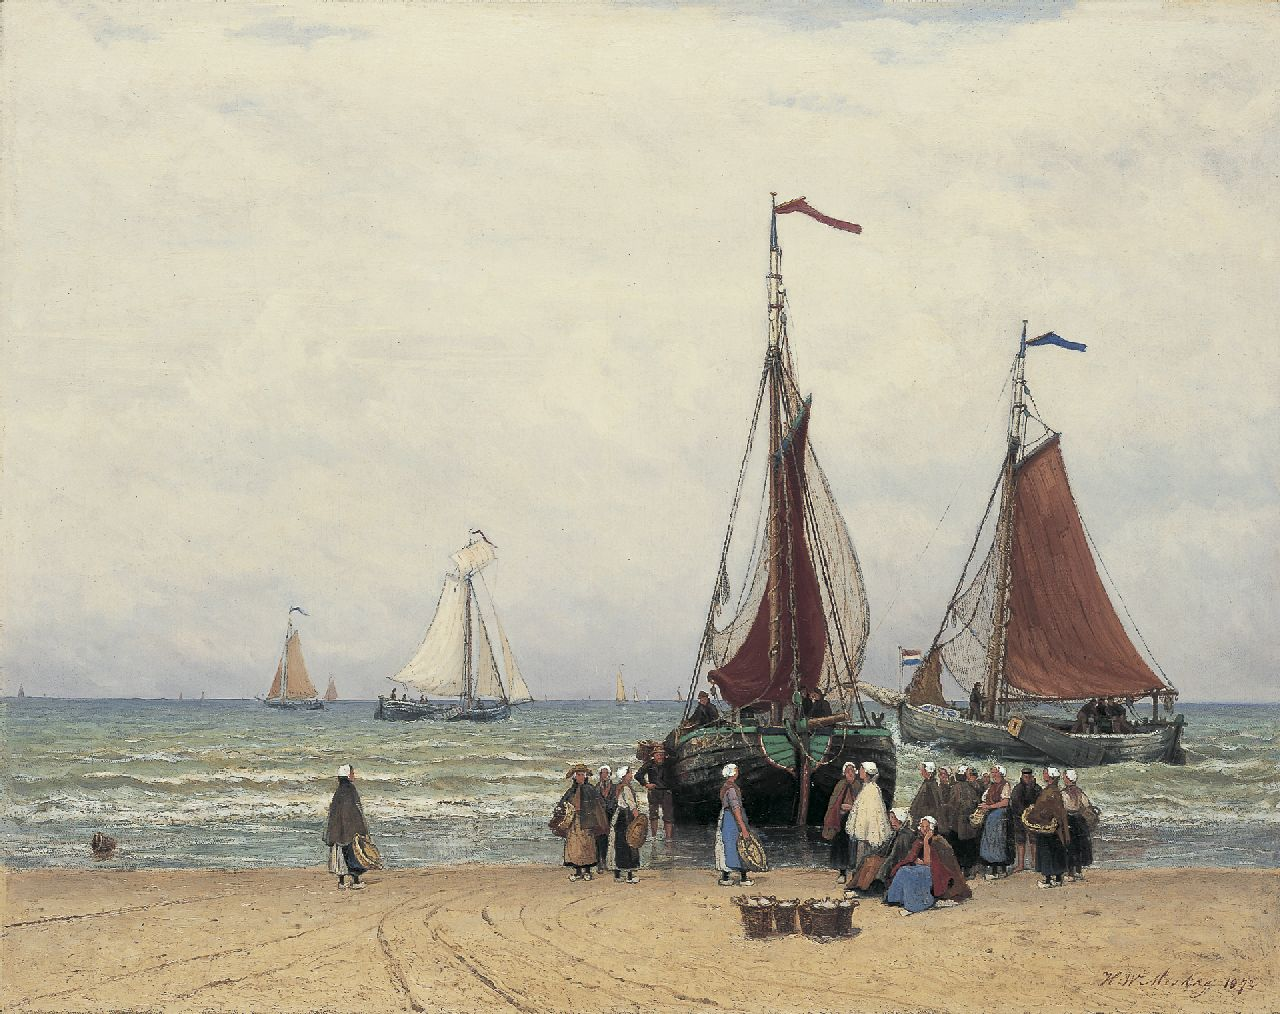 Mesdag H.W.  | Hendrik Willem Mesdag, Fisherfolk and 'bomschuiten' on the beach of Scheveningen, oil on canvas 69.5 x 88.3 cm, signed l.r. and dated 1872